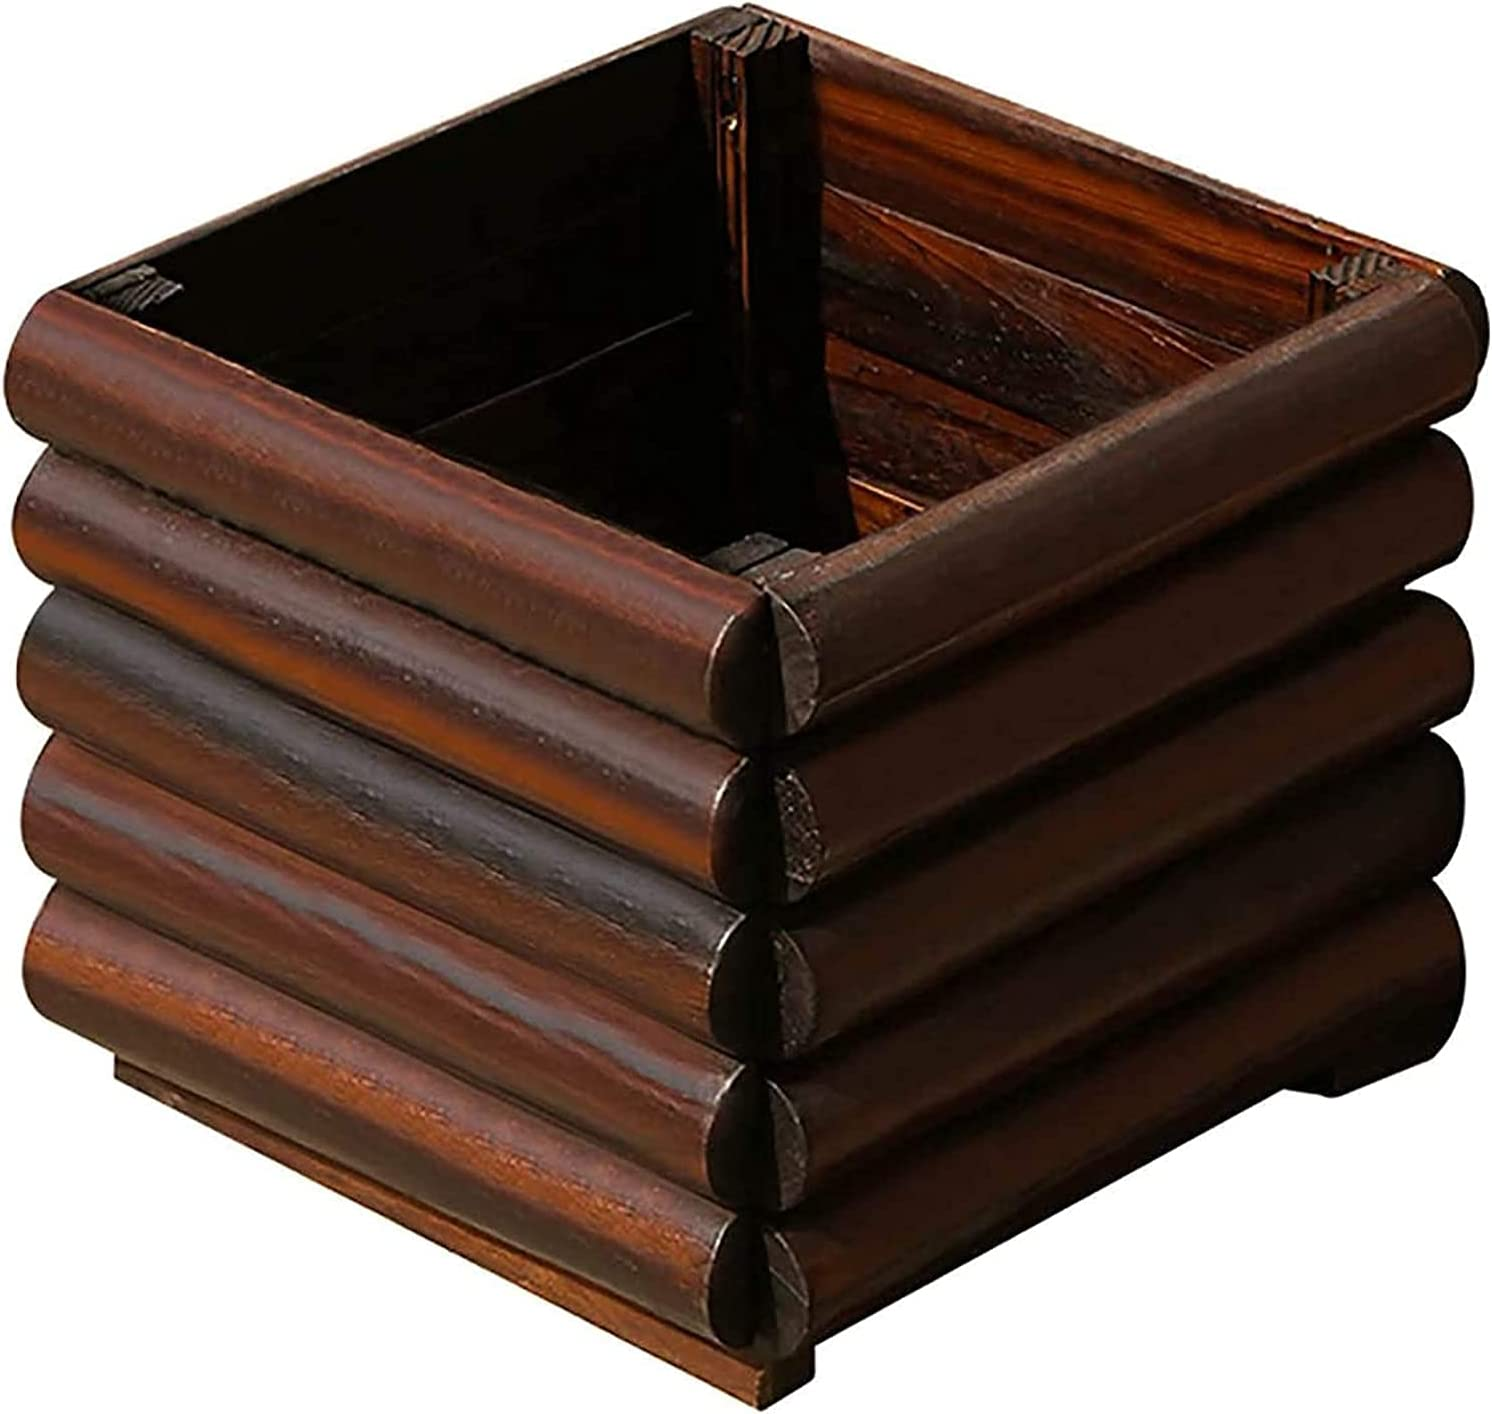 Jin-Siu Raised Garden Bed Plan for Planter 67% OFF of Chicago Mall fixed price Box